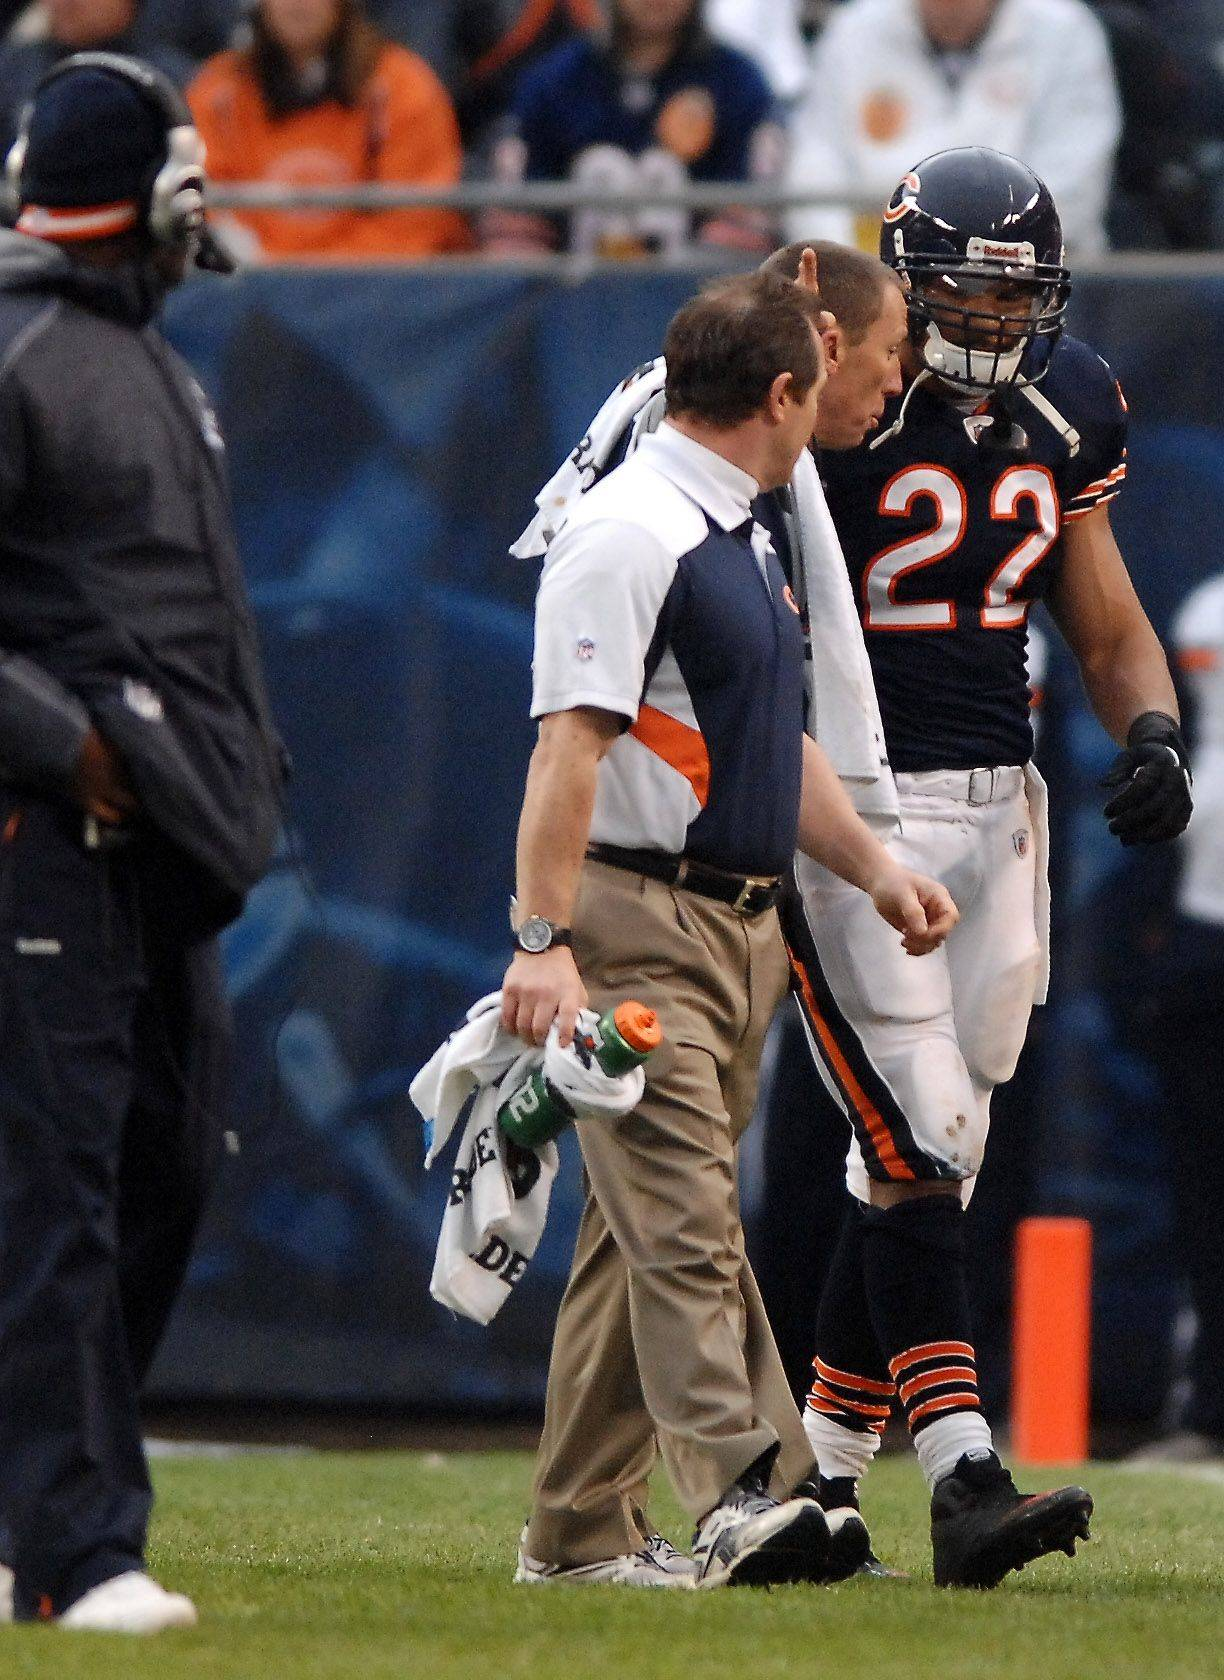 Bears running back Matt Forte walks off the field after an injury to his right knee in the first quarter Sunday at Soldier Field.